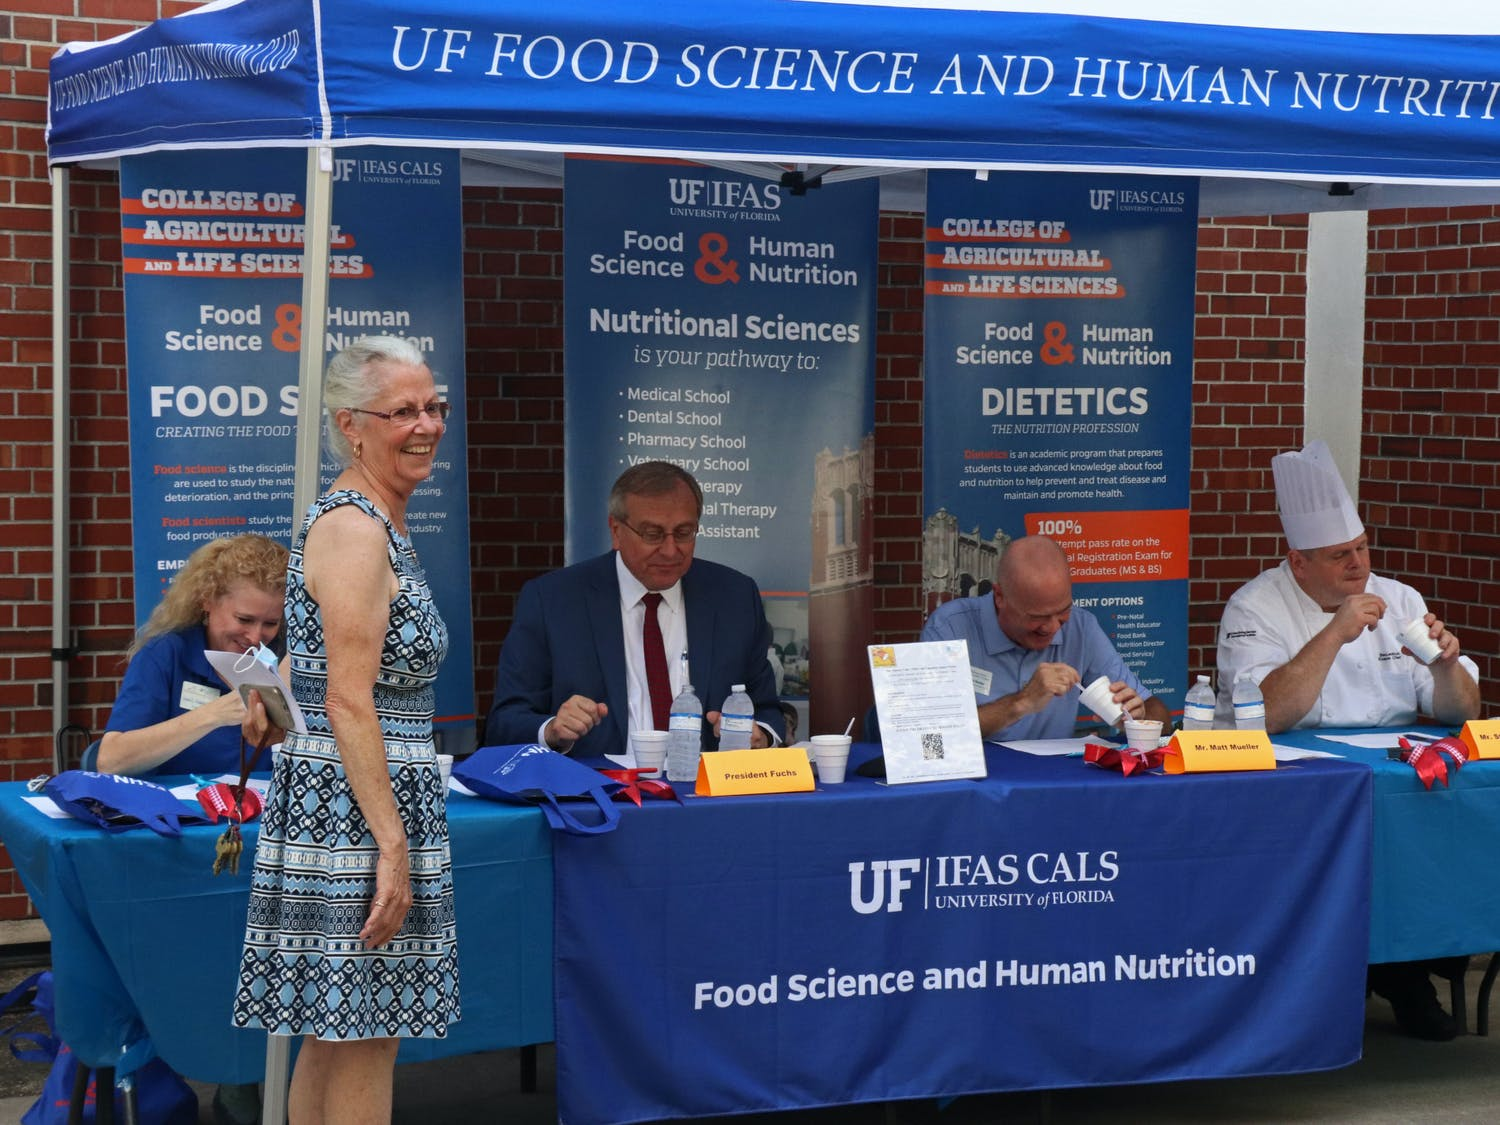 Susan Percival, Food Science and Human Nutrition Department chair, smiles while the judges taste chili during the Chili Cook Off on Friday, Oct. 15, 2021. The fundraising event was a part of Food Week 2021.